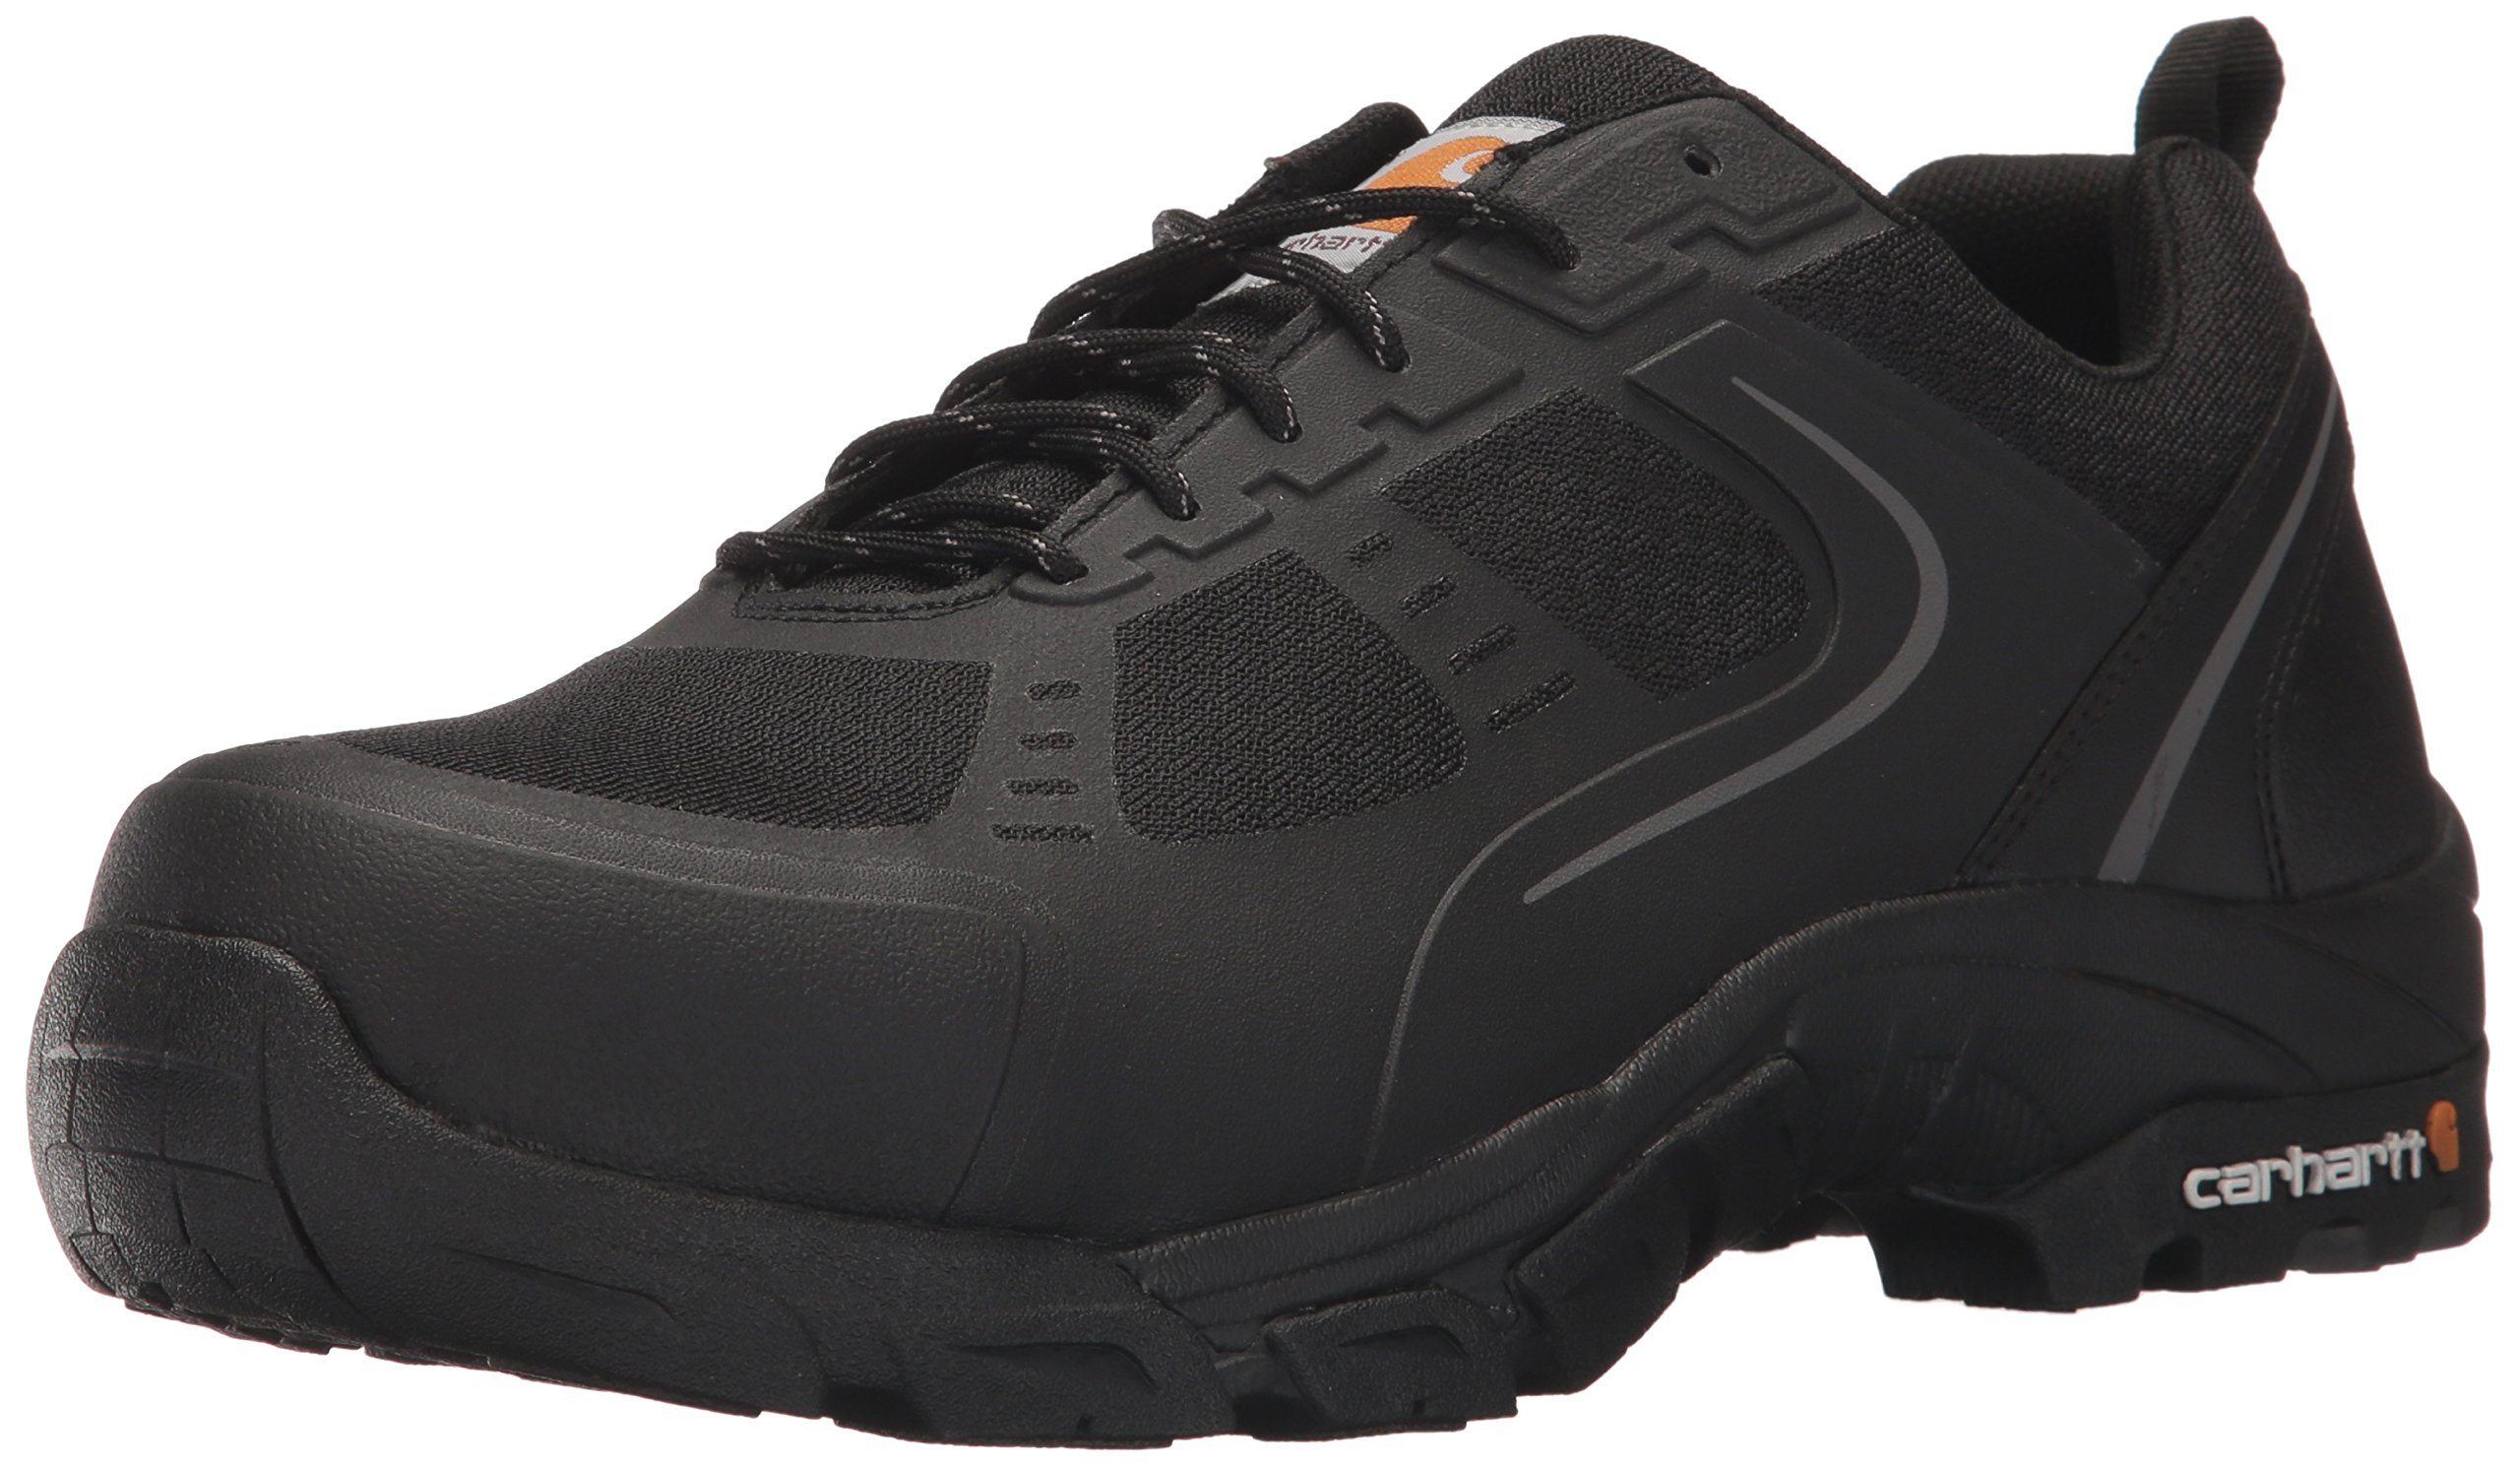 Carhartt Men's Oxford Black Lightweight Hiker Steeltoe CMO3251 Industrial Boot, Black Mesh and Synthetic, 12 M US